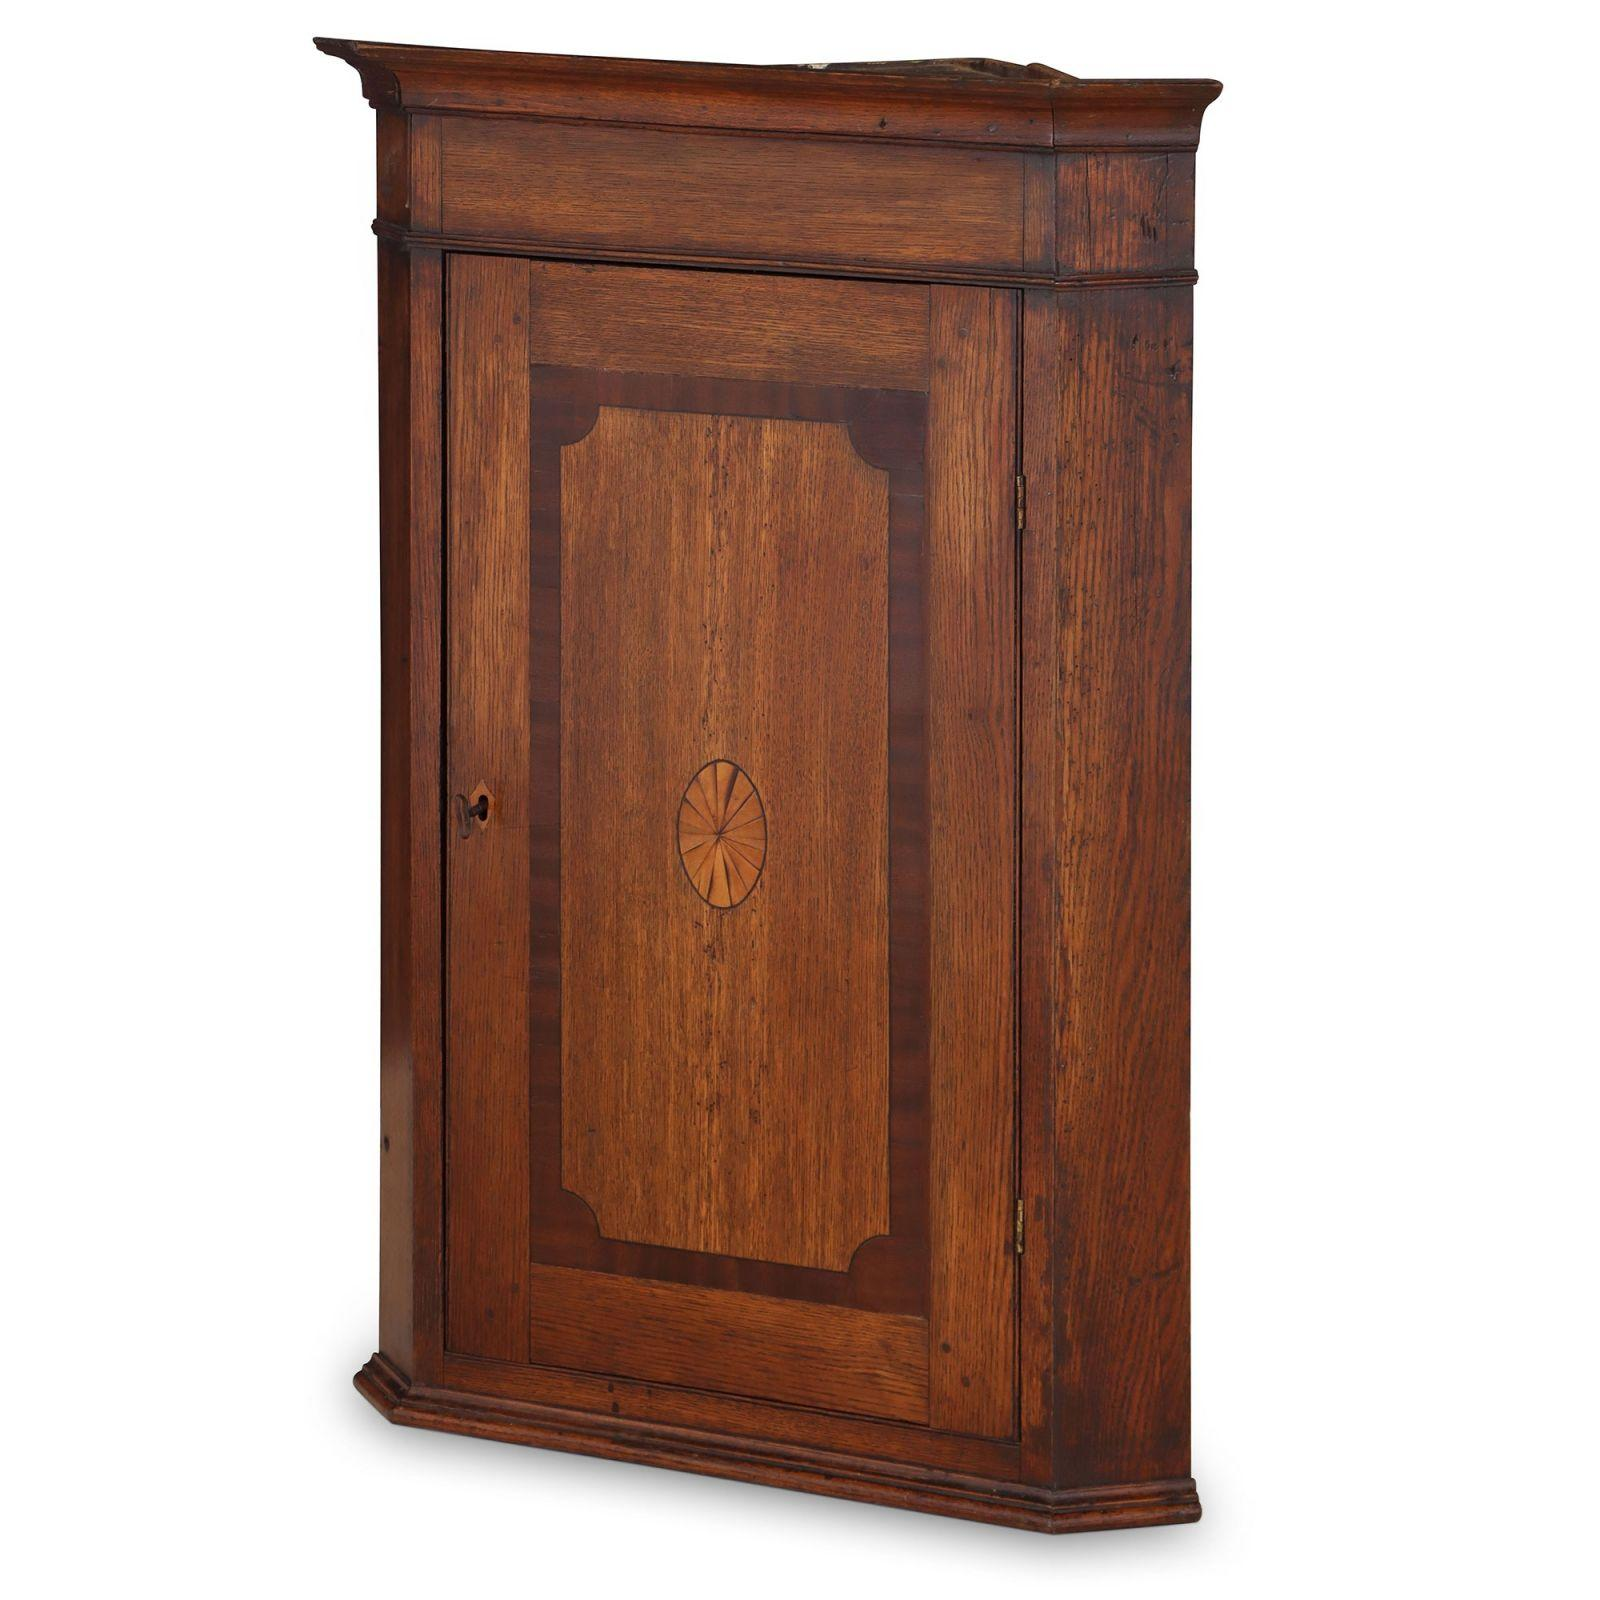 Antique solid oak corner cabinet